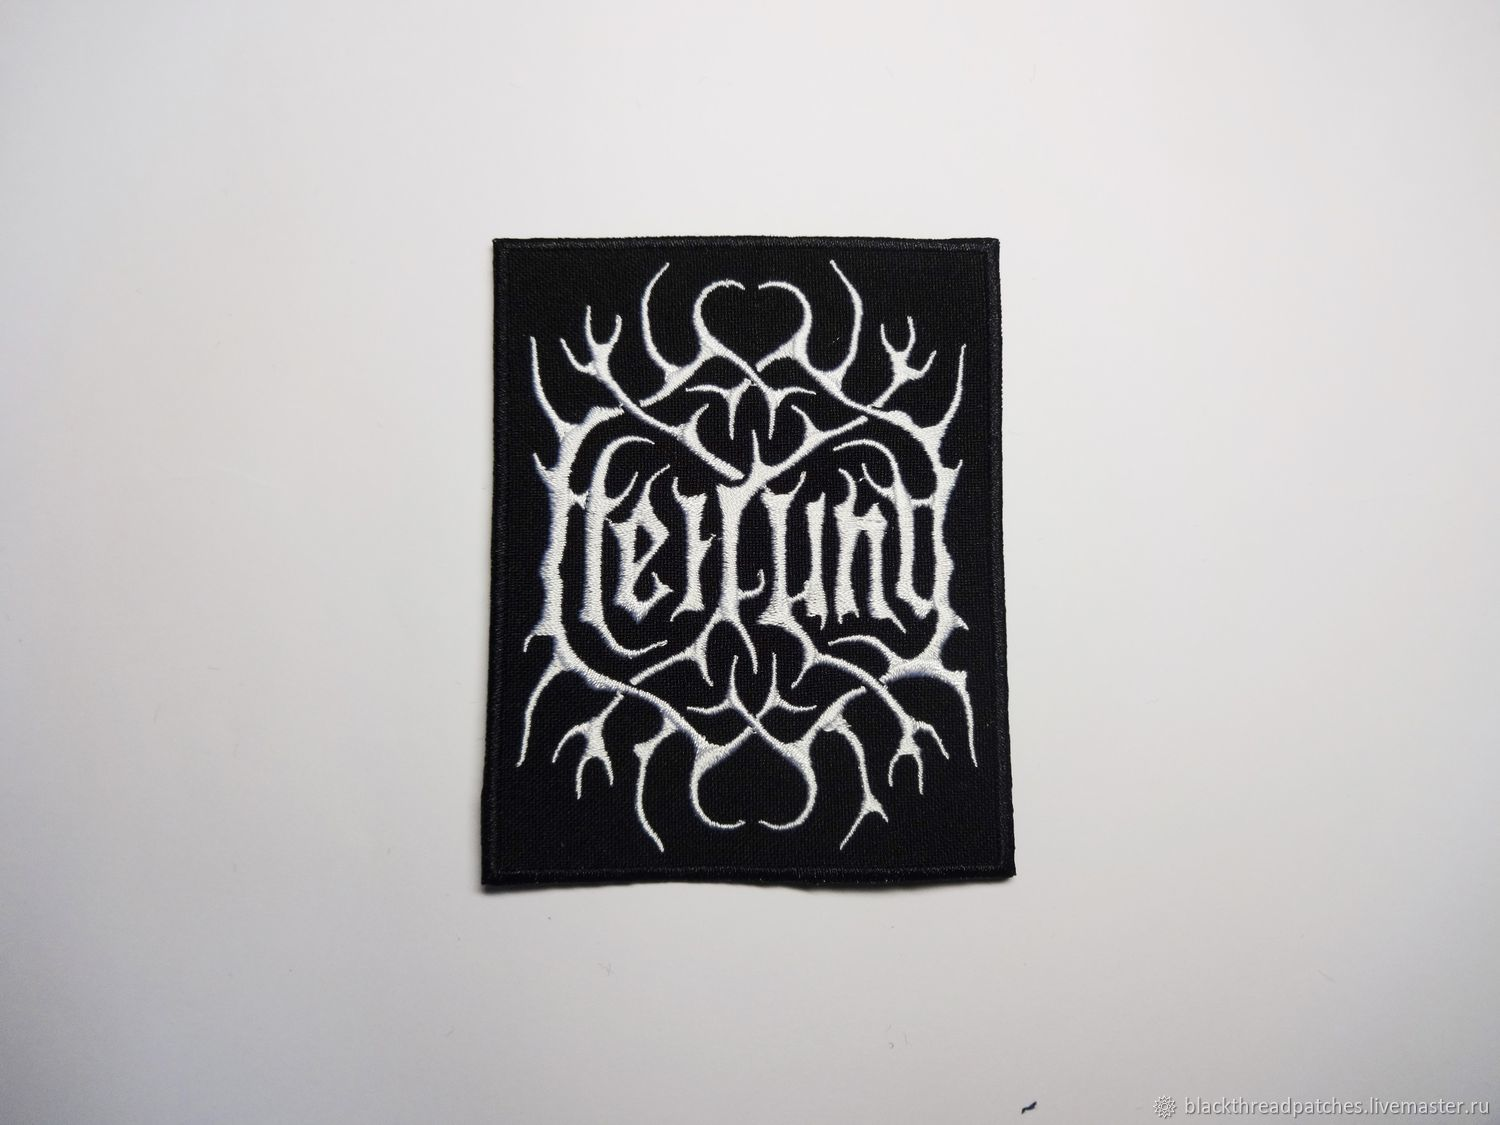 Heilund patch, Patches, St. Petersburg,  Фото №1